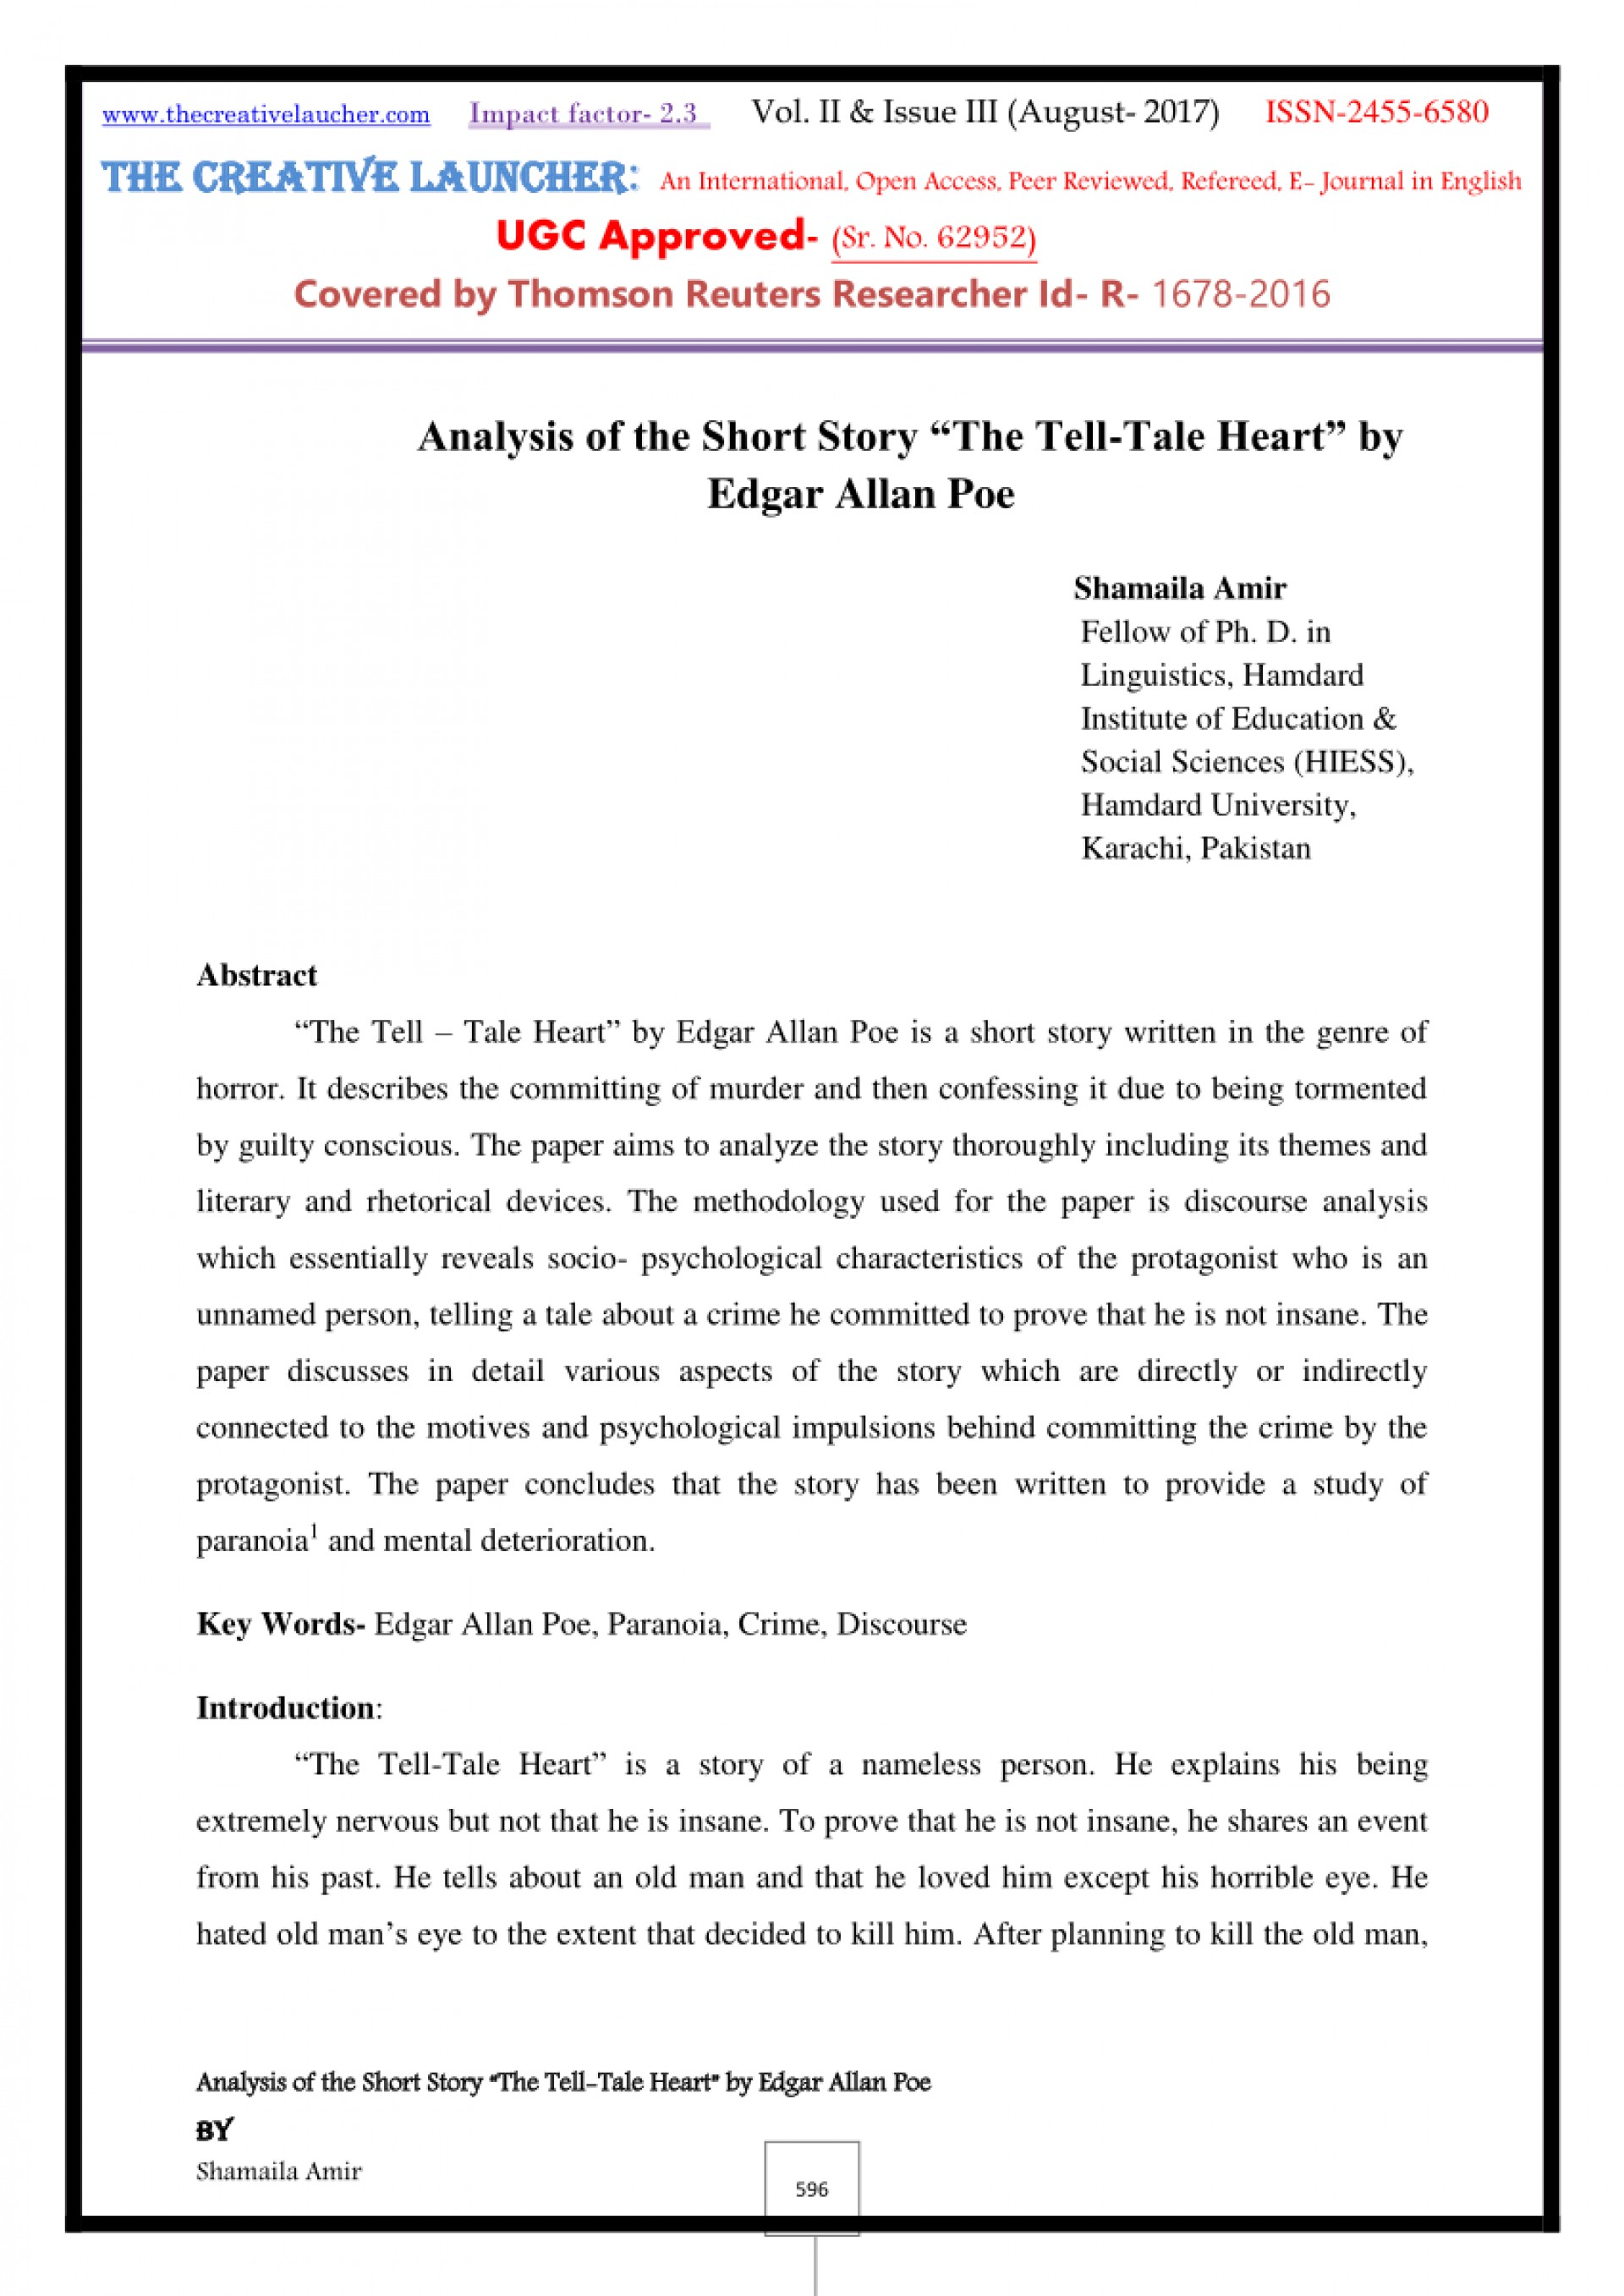 002 Essay Example The Tell Tale Heart Wonderful Questions And Answers Prompt 1920